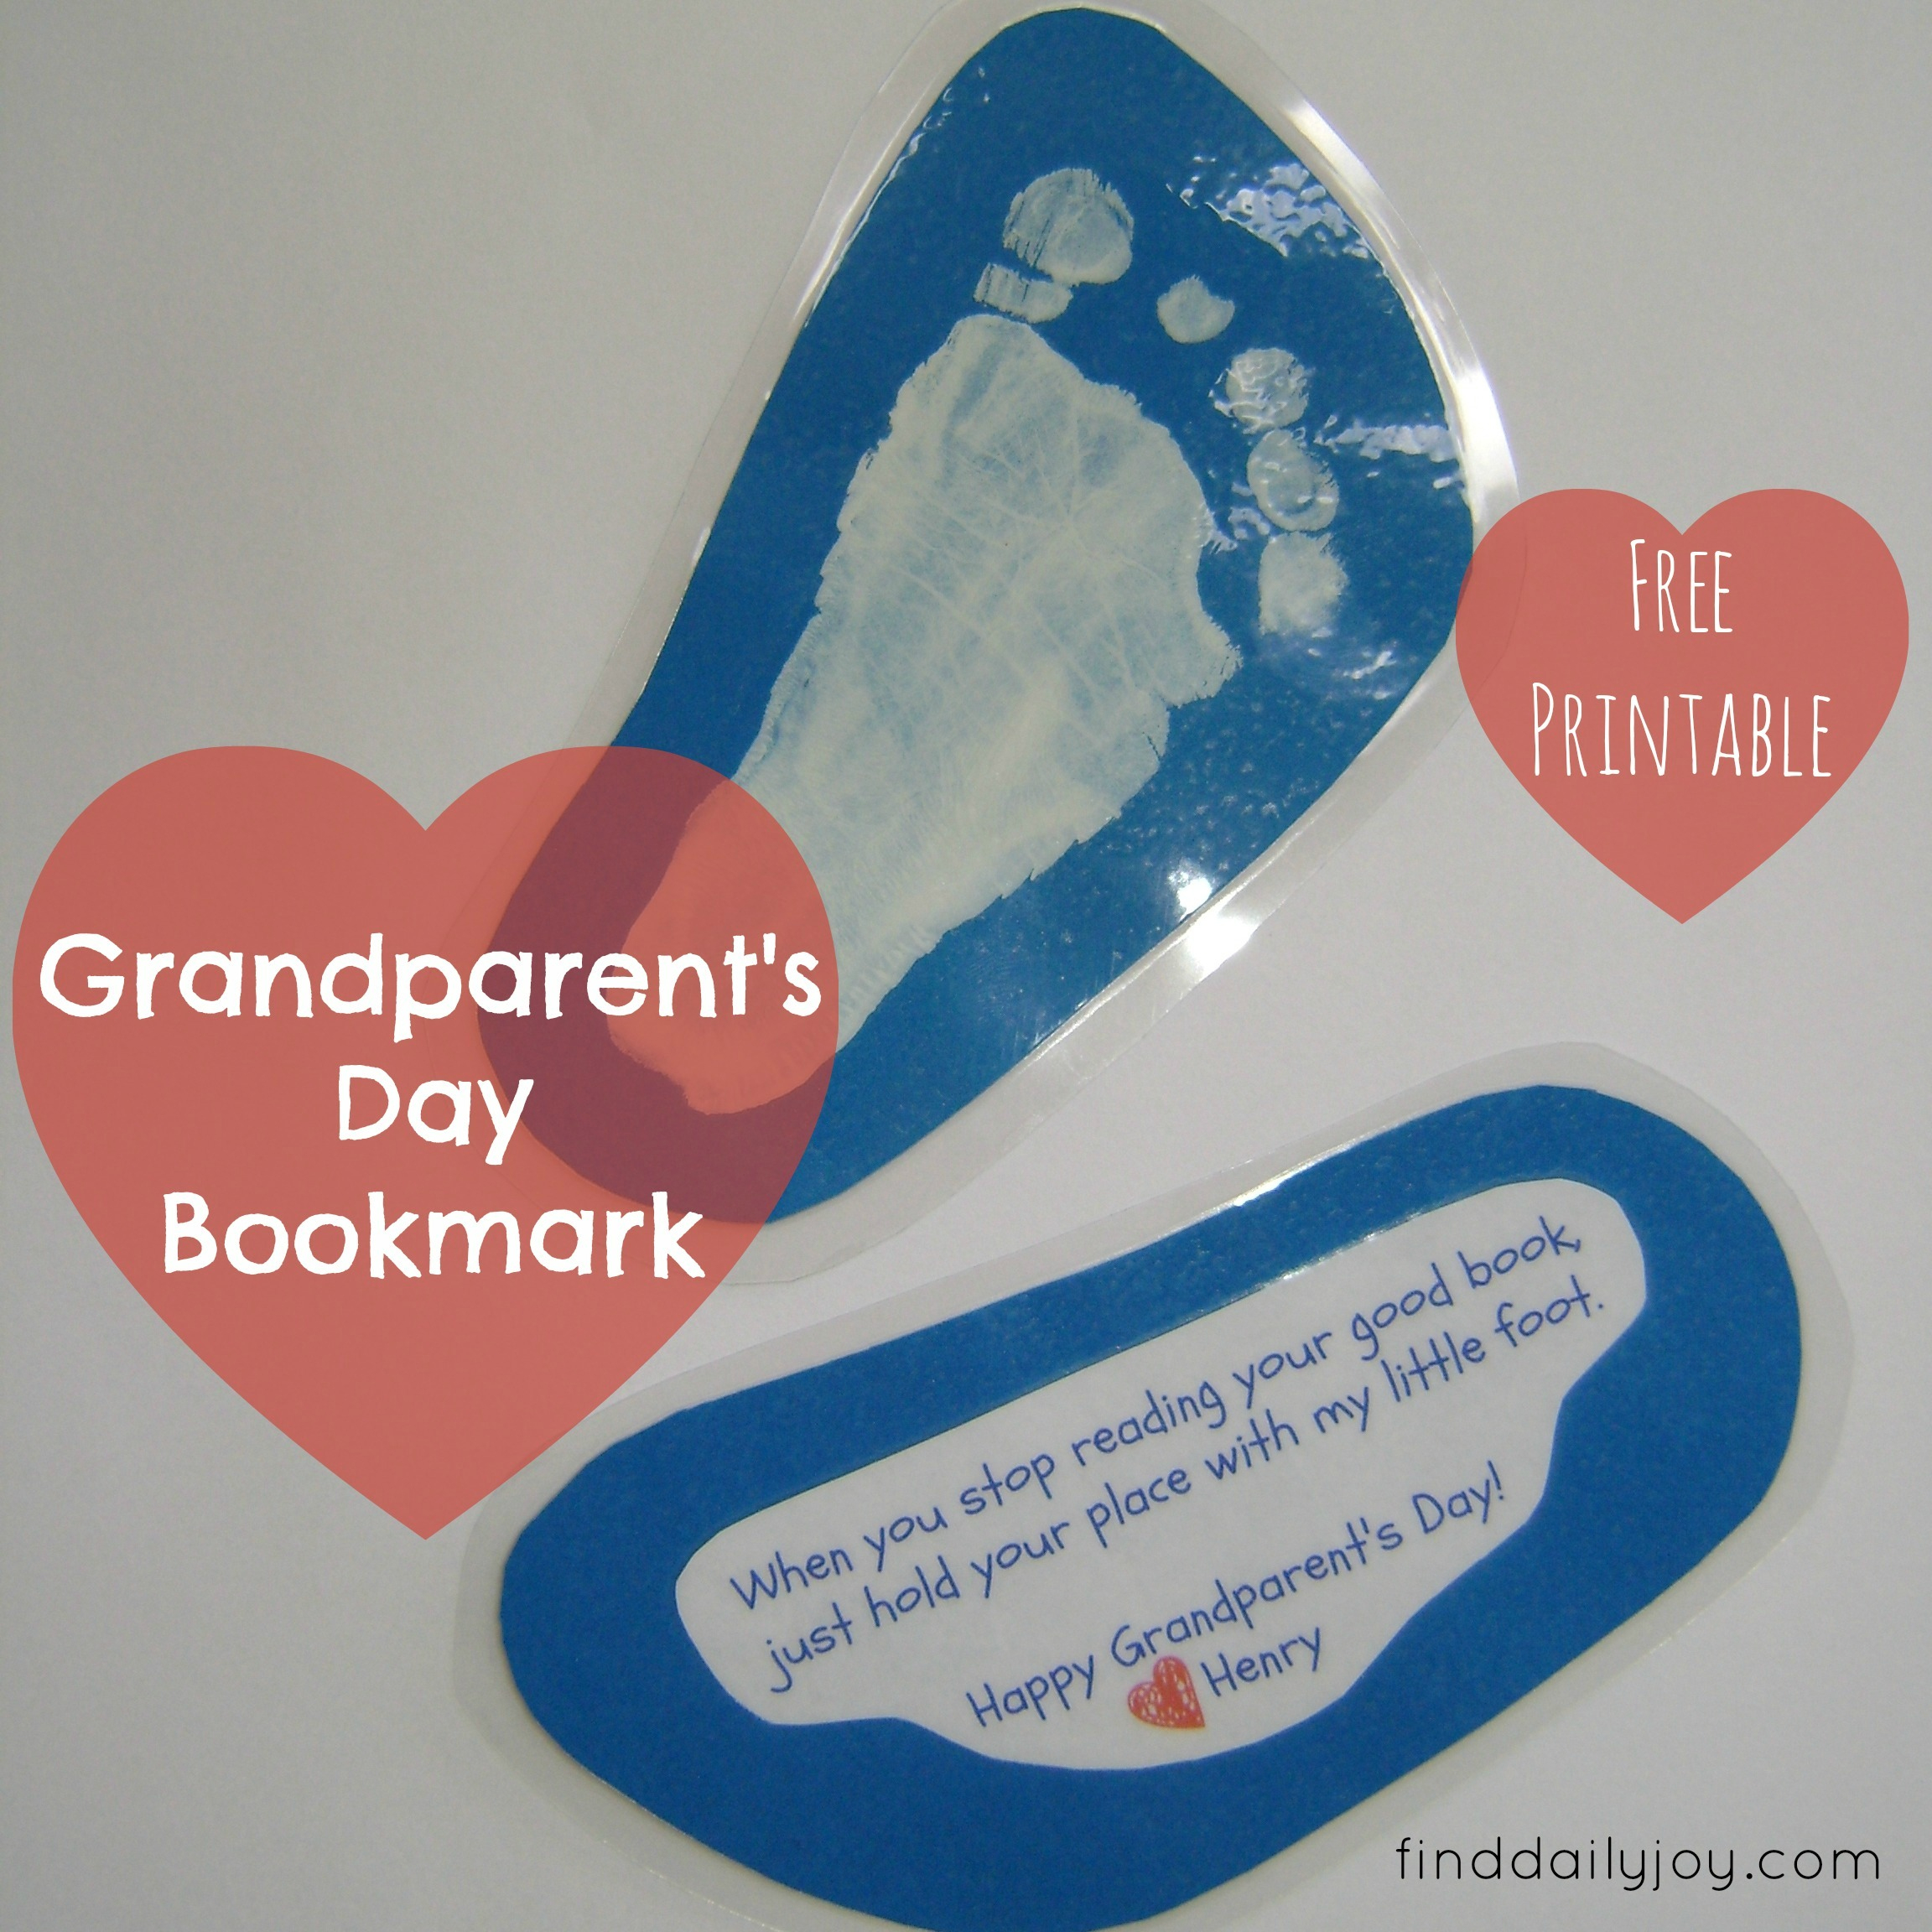 Grandparent's Day Bookmark {Free Printable}   Find Daily Joy - Free Printable Baby Bookmarks